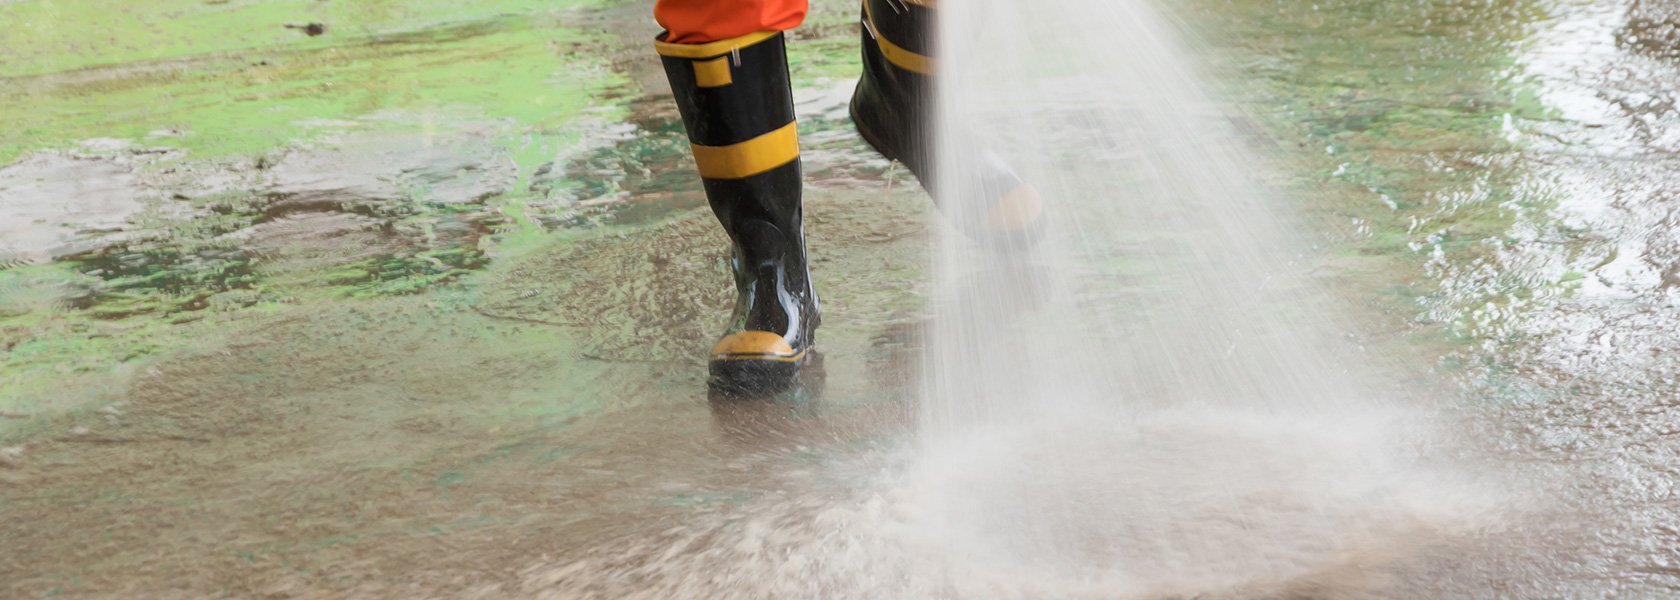 Deep Cleaning Services in Abu Dhabi